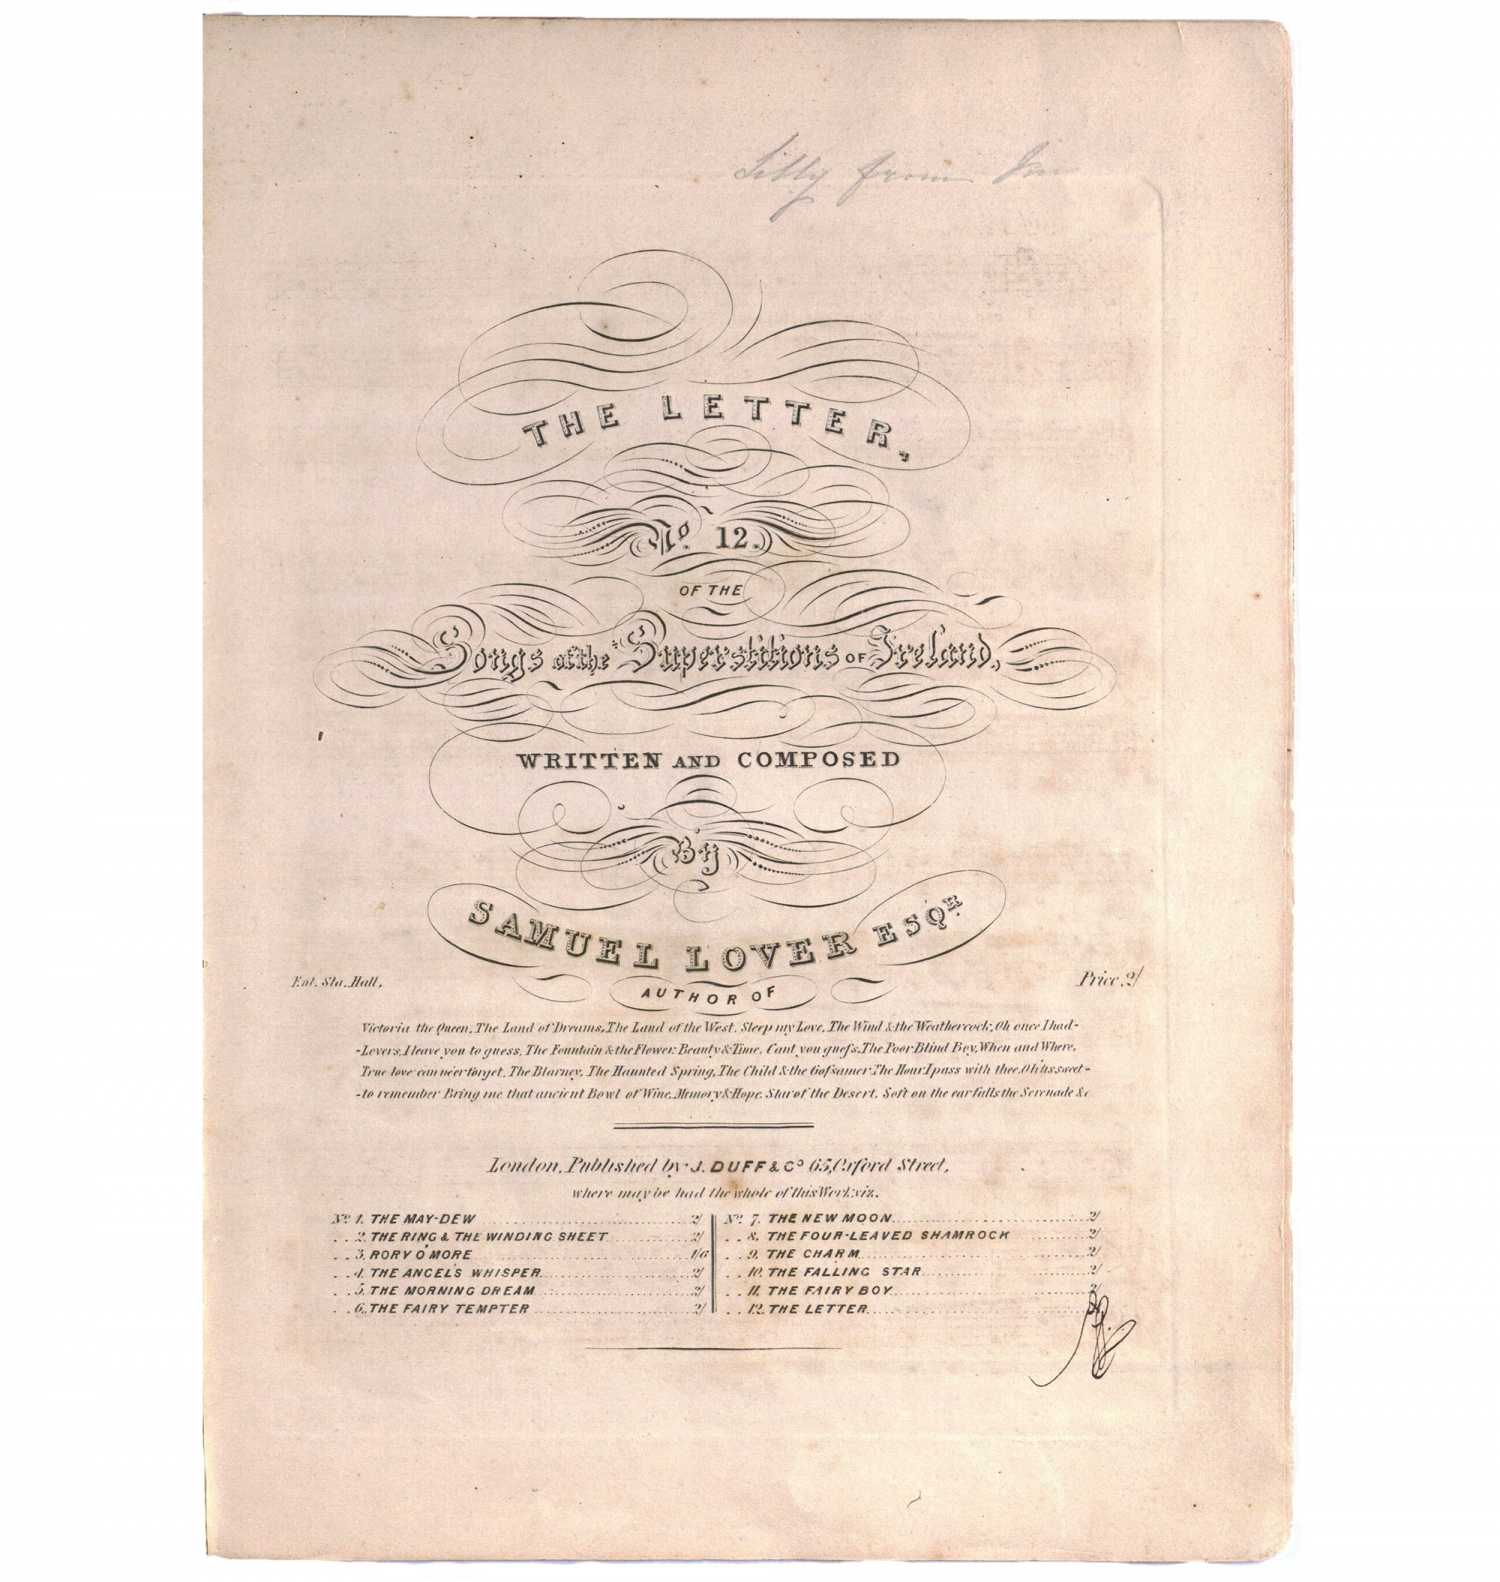 Cover, 'The letter' by Samuel Lover, c1839, from the Dowling Songbook.